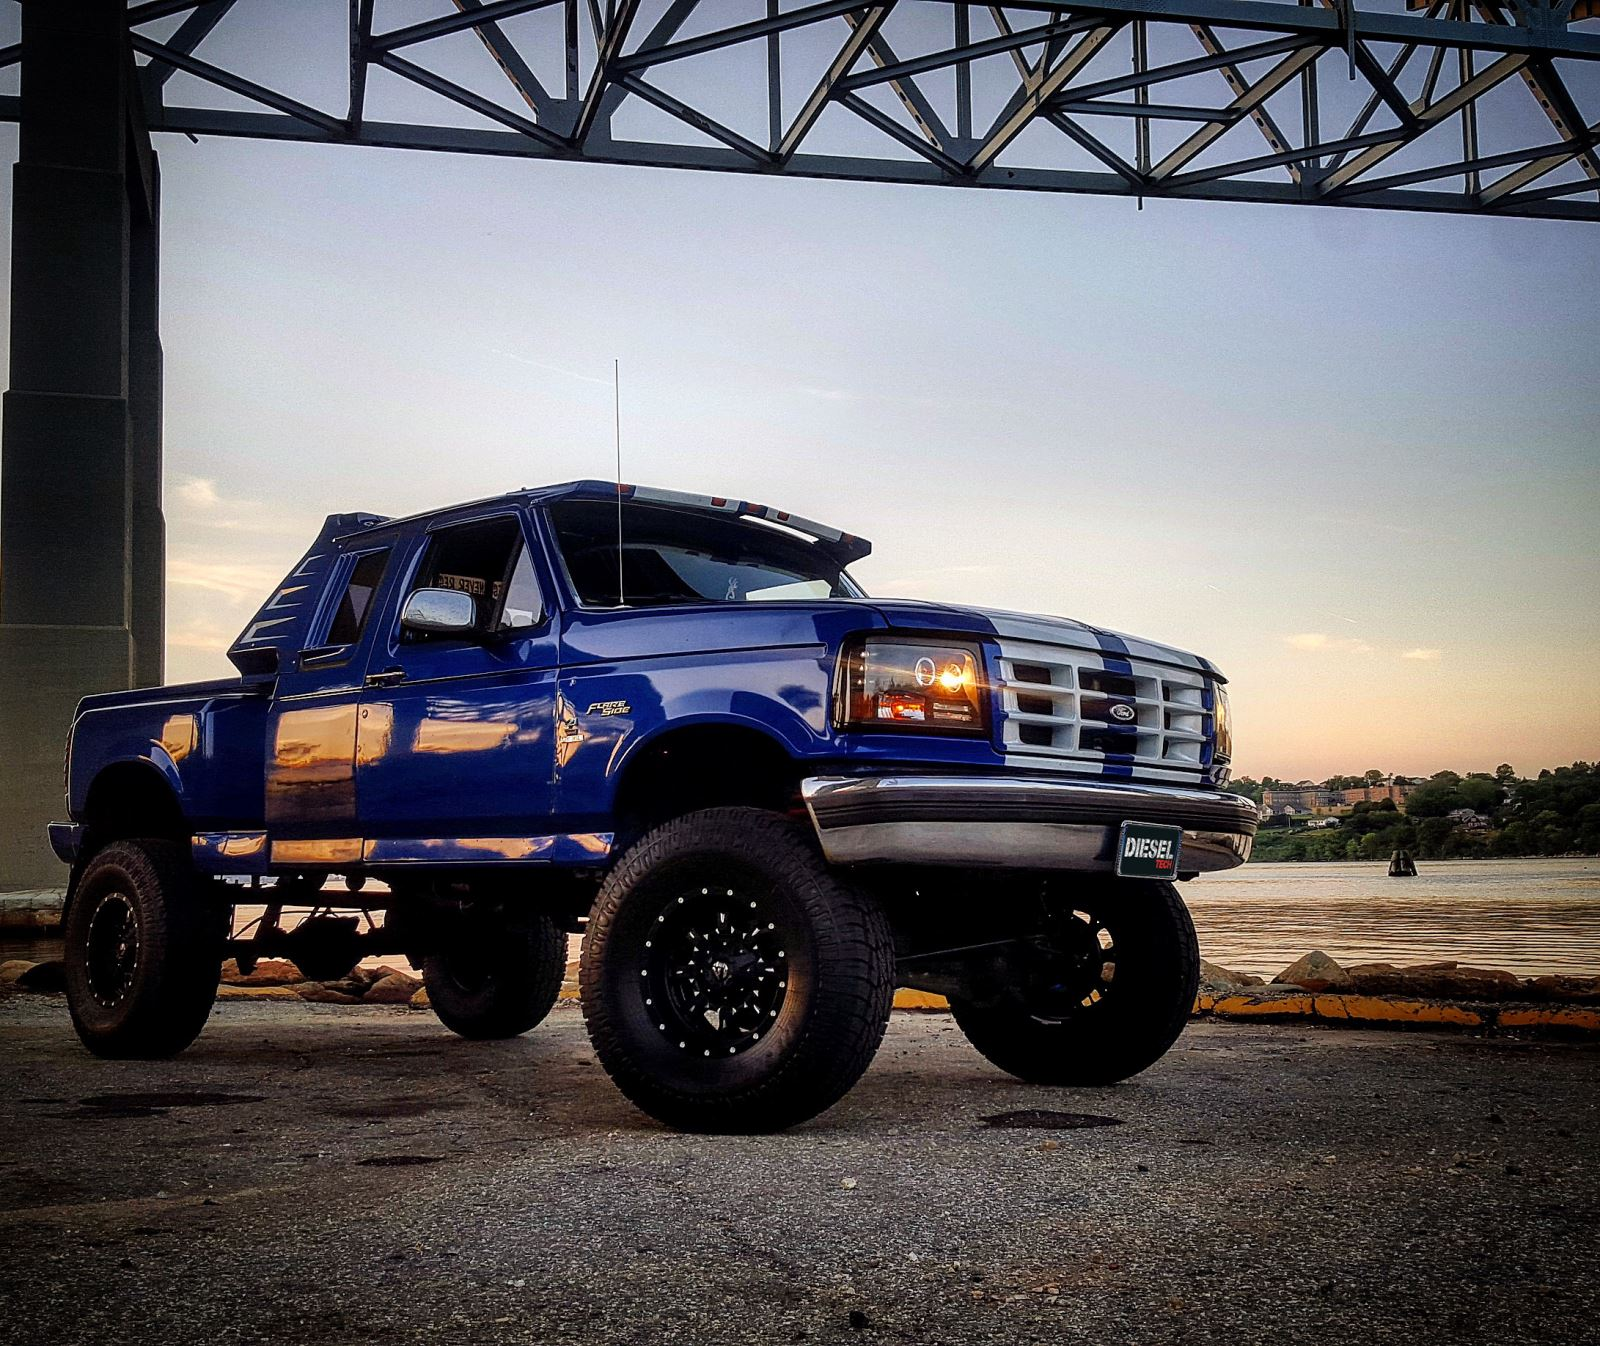 Build A Truck Ford: The Best Of Both Worlds OBS Ford, Meet Cummins